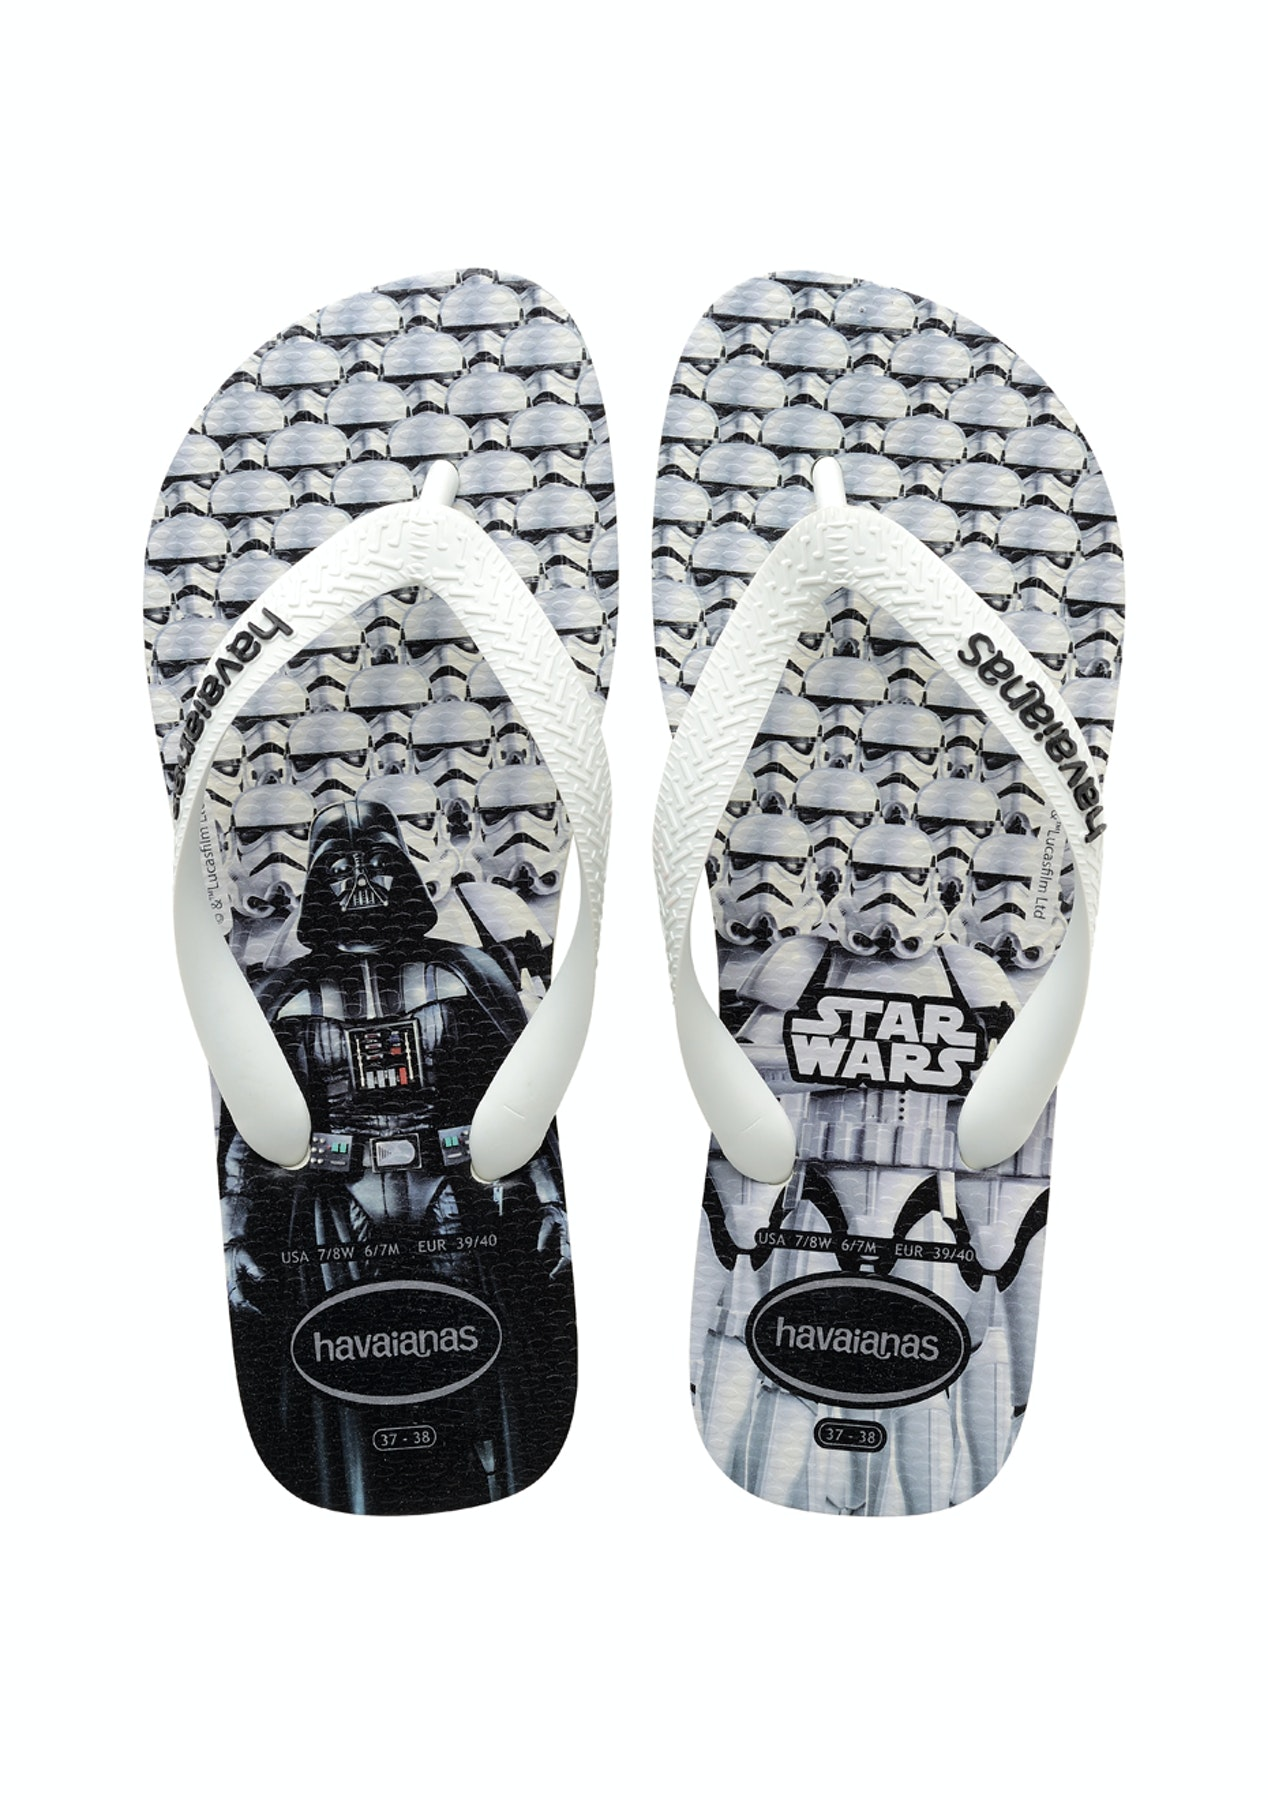 414c2f037ec Havaianas - Top Star Wars - NEW Havaianas - up to 60% off - Onceit